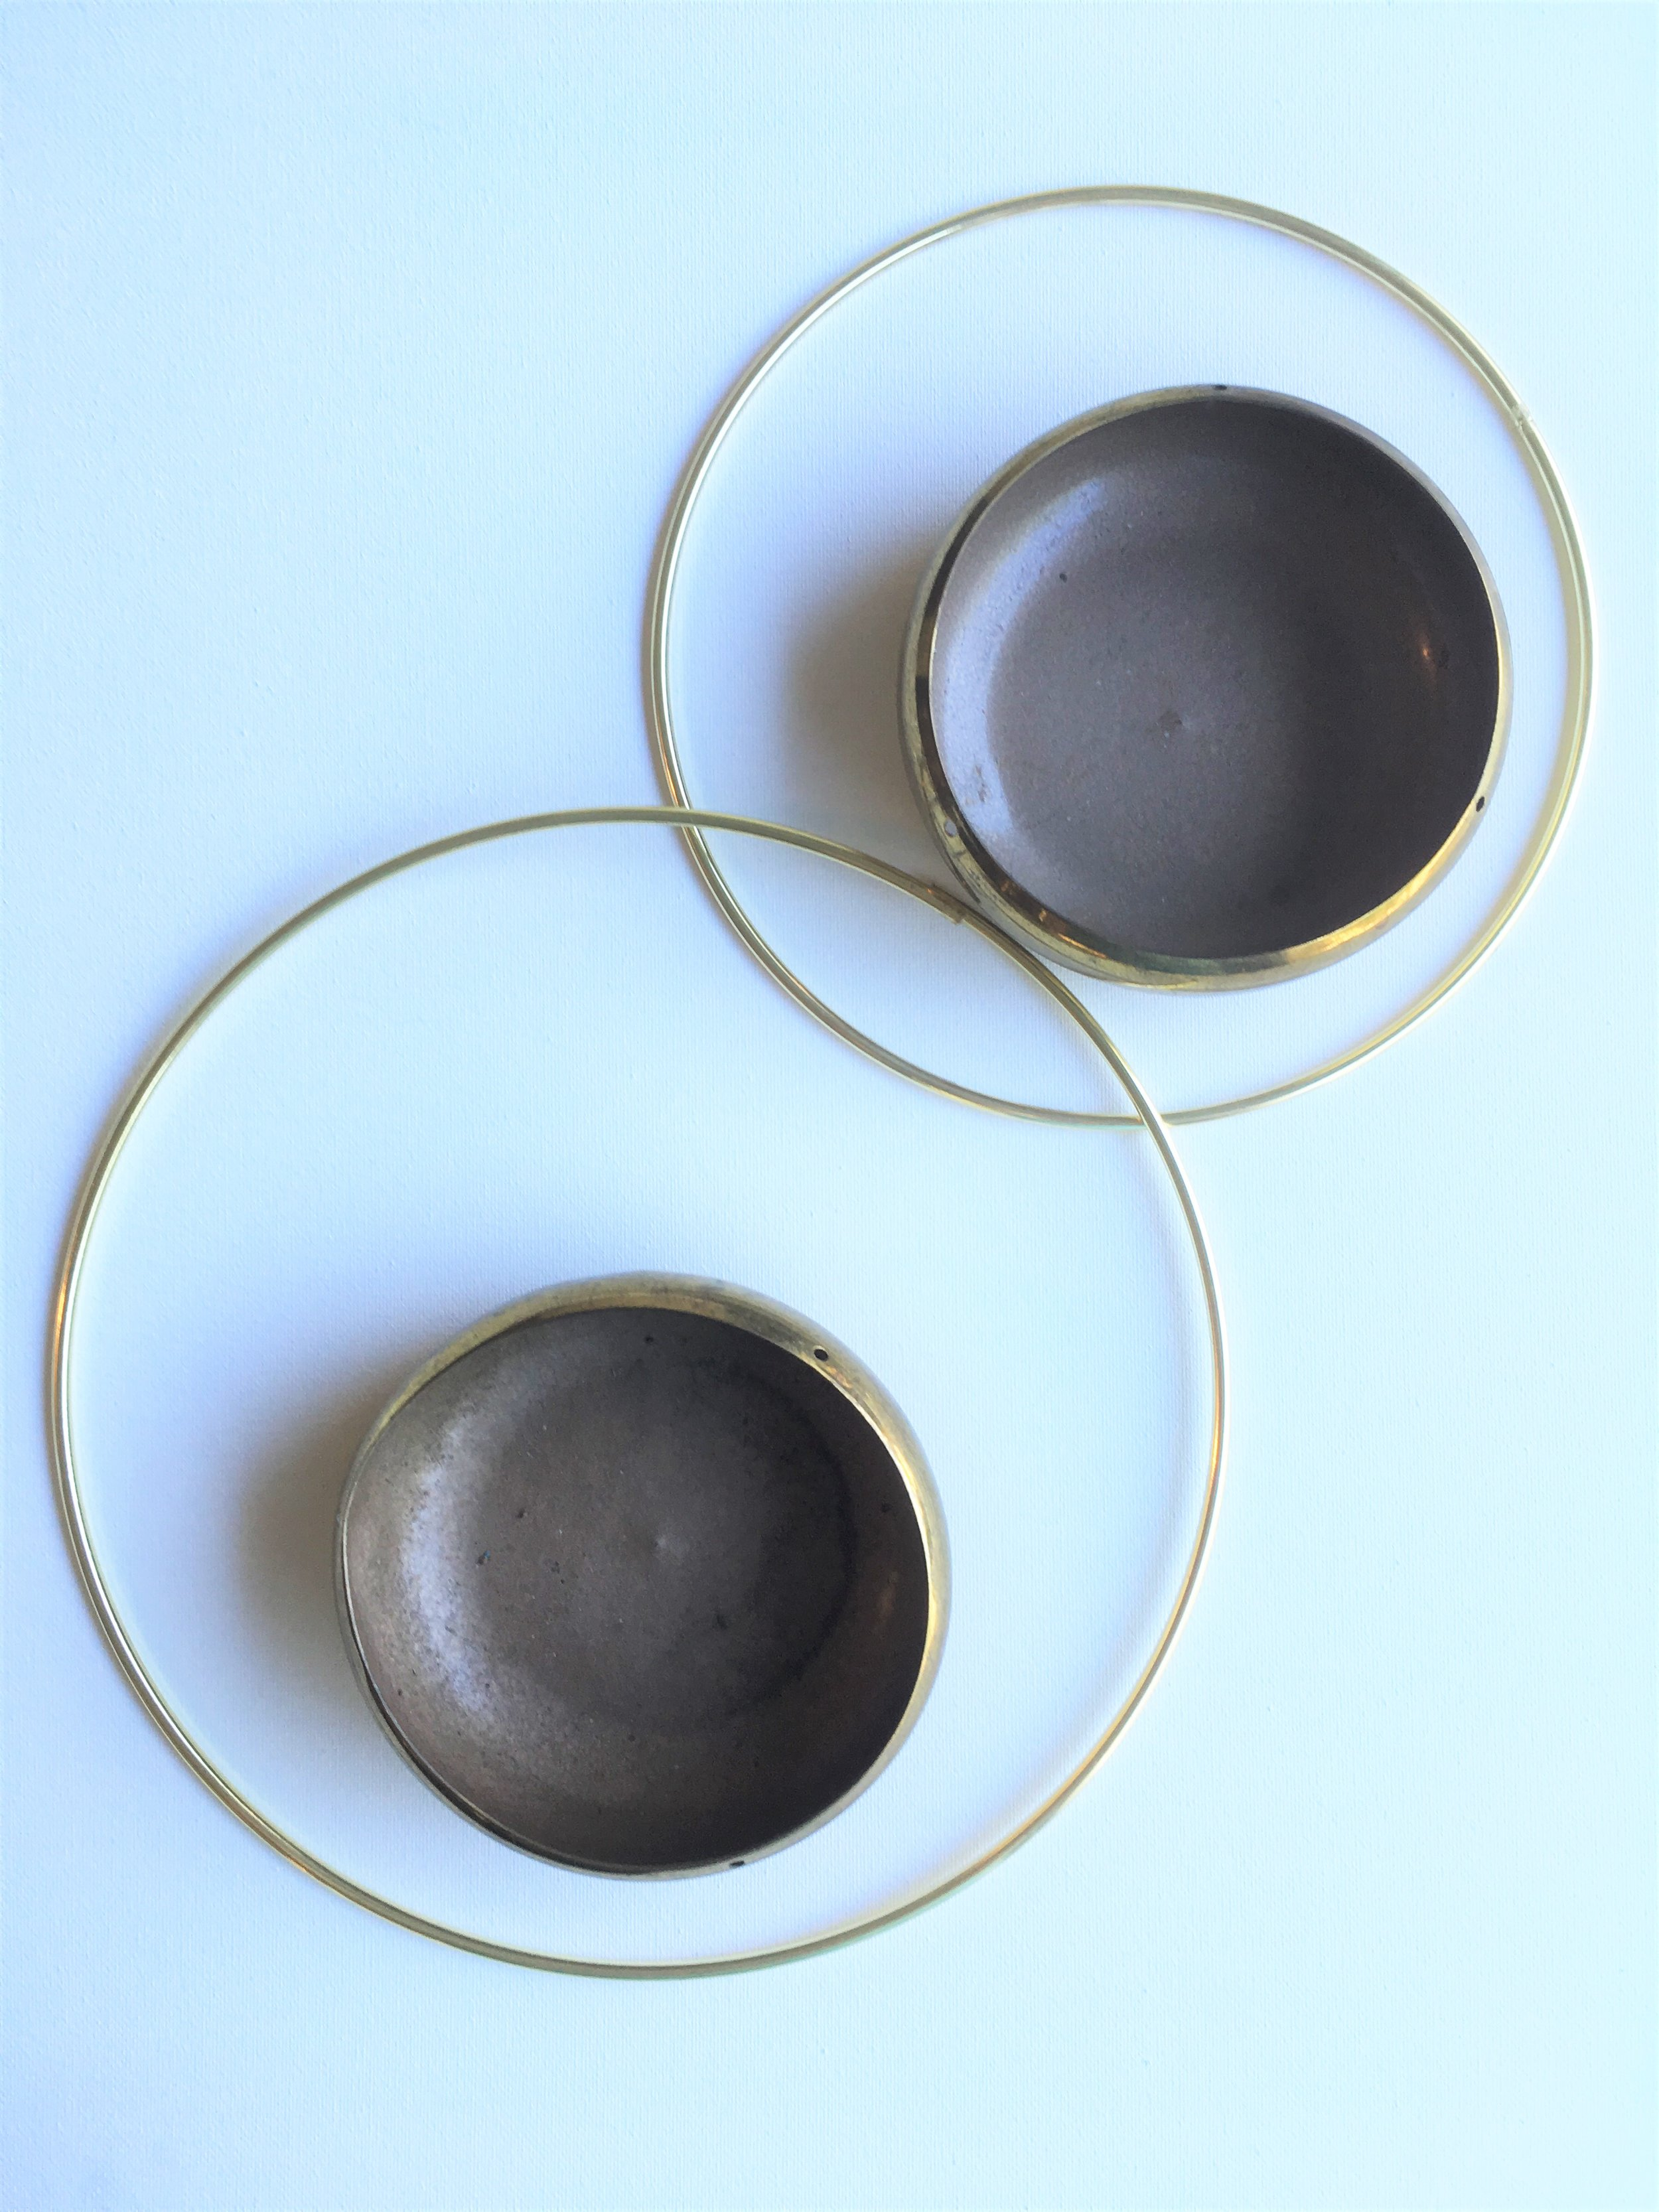 Supplies - Brass Bowls + Macramé Hoops